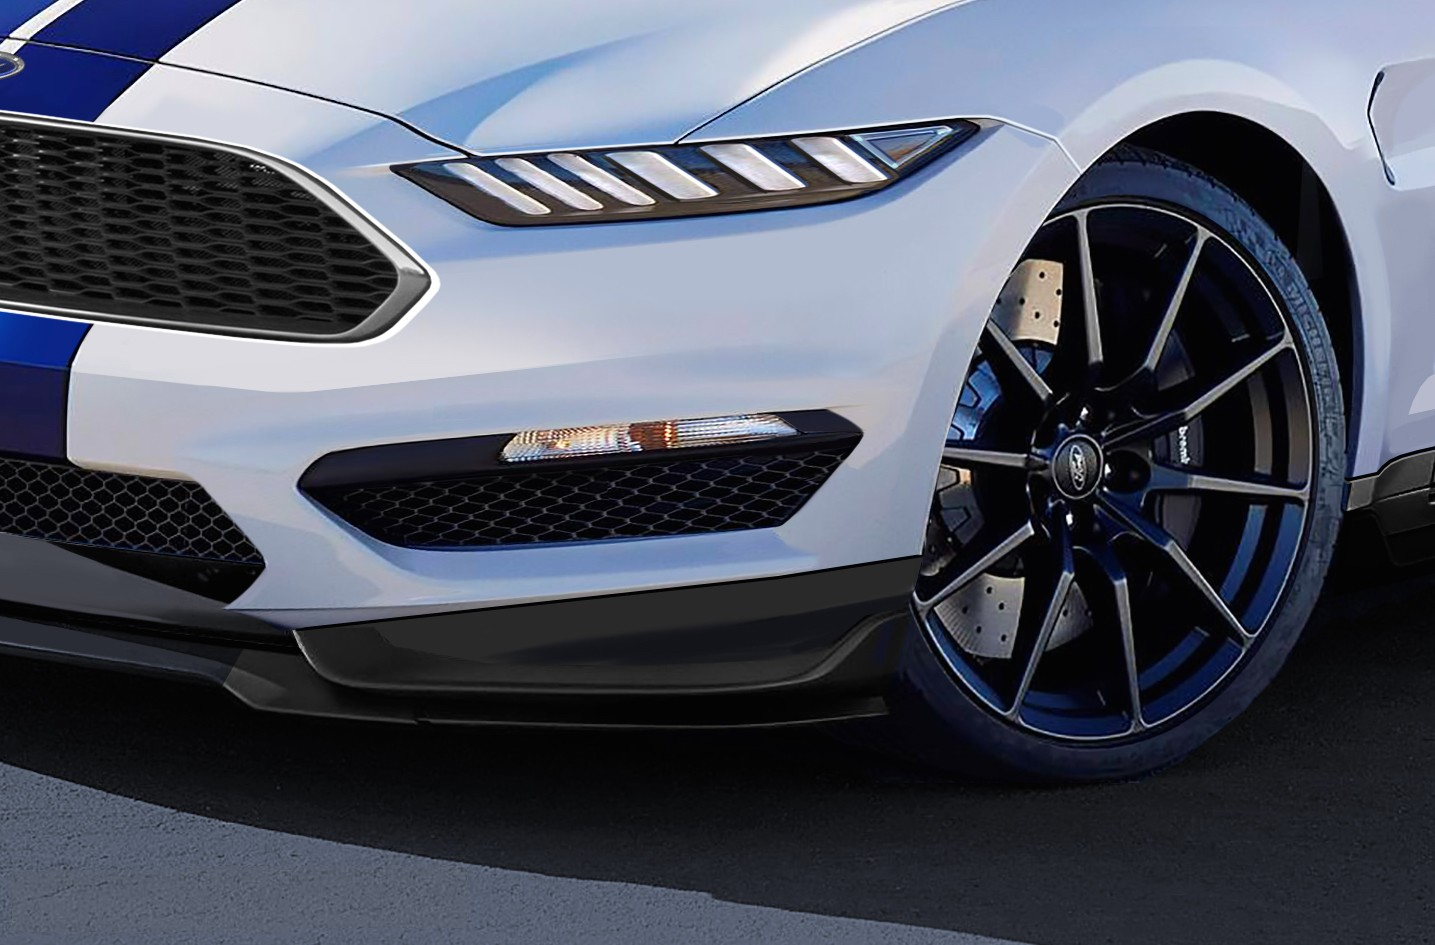 2020 Ford Mustang Shelby GT350 Concept!